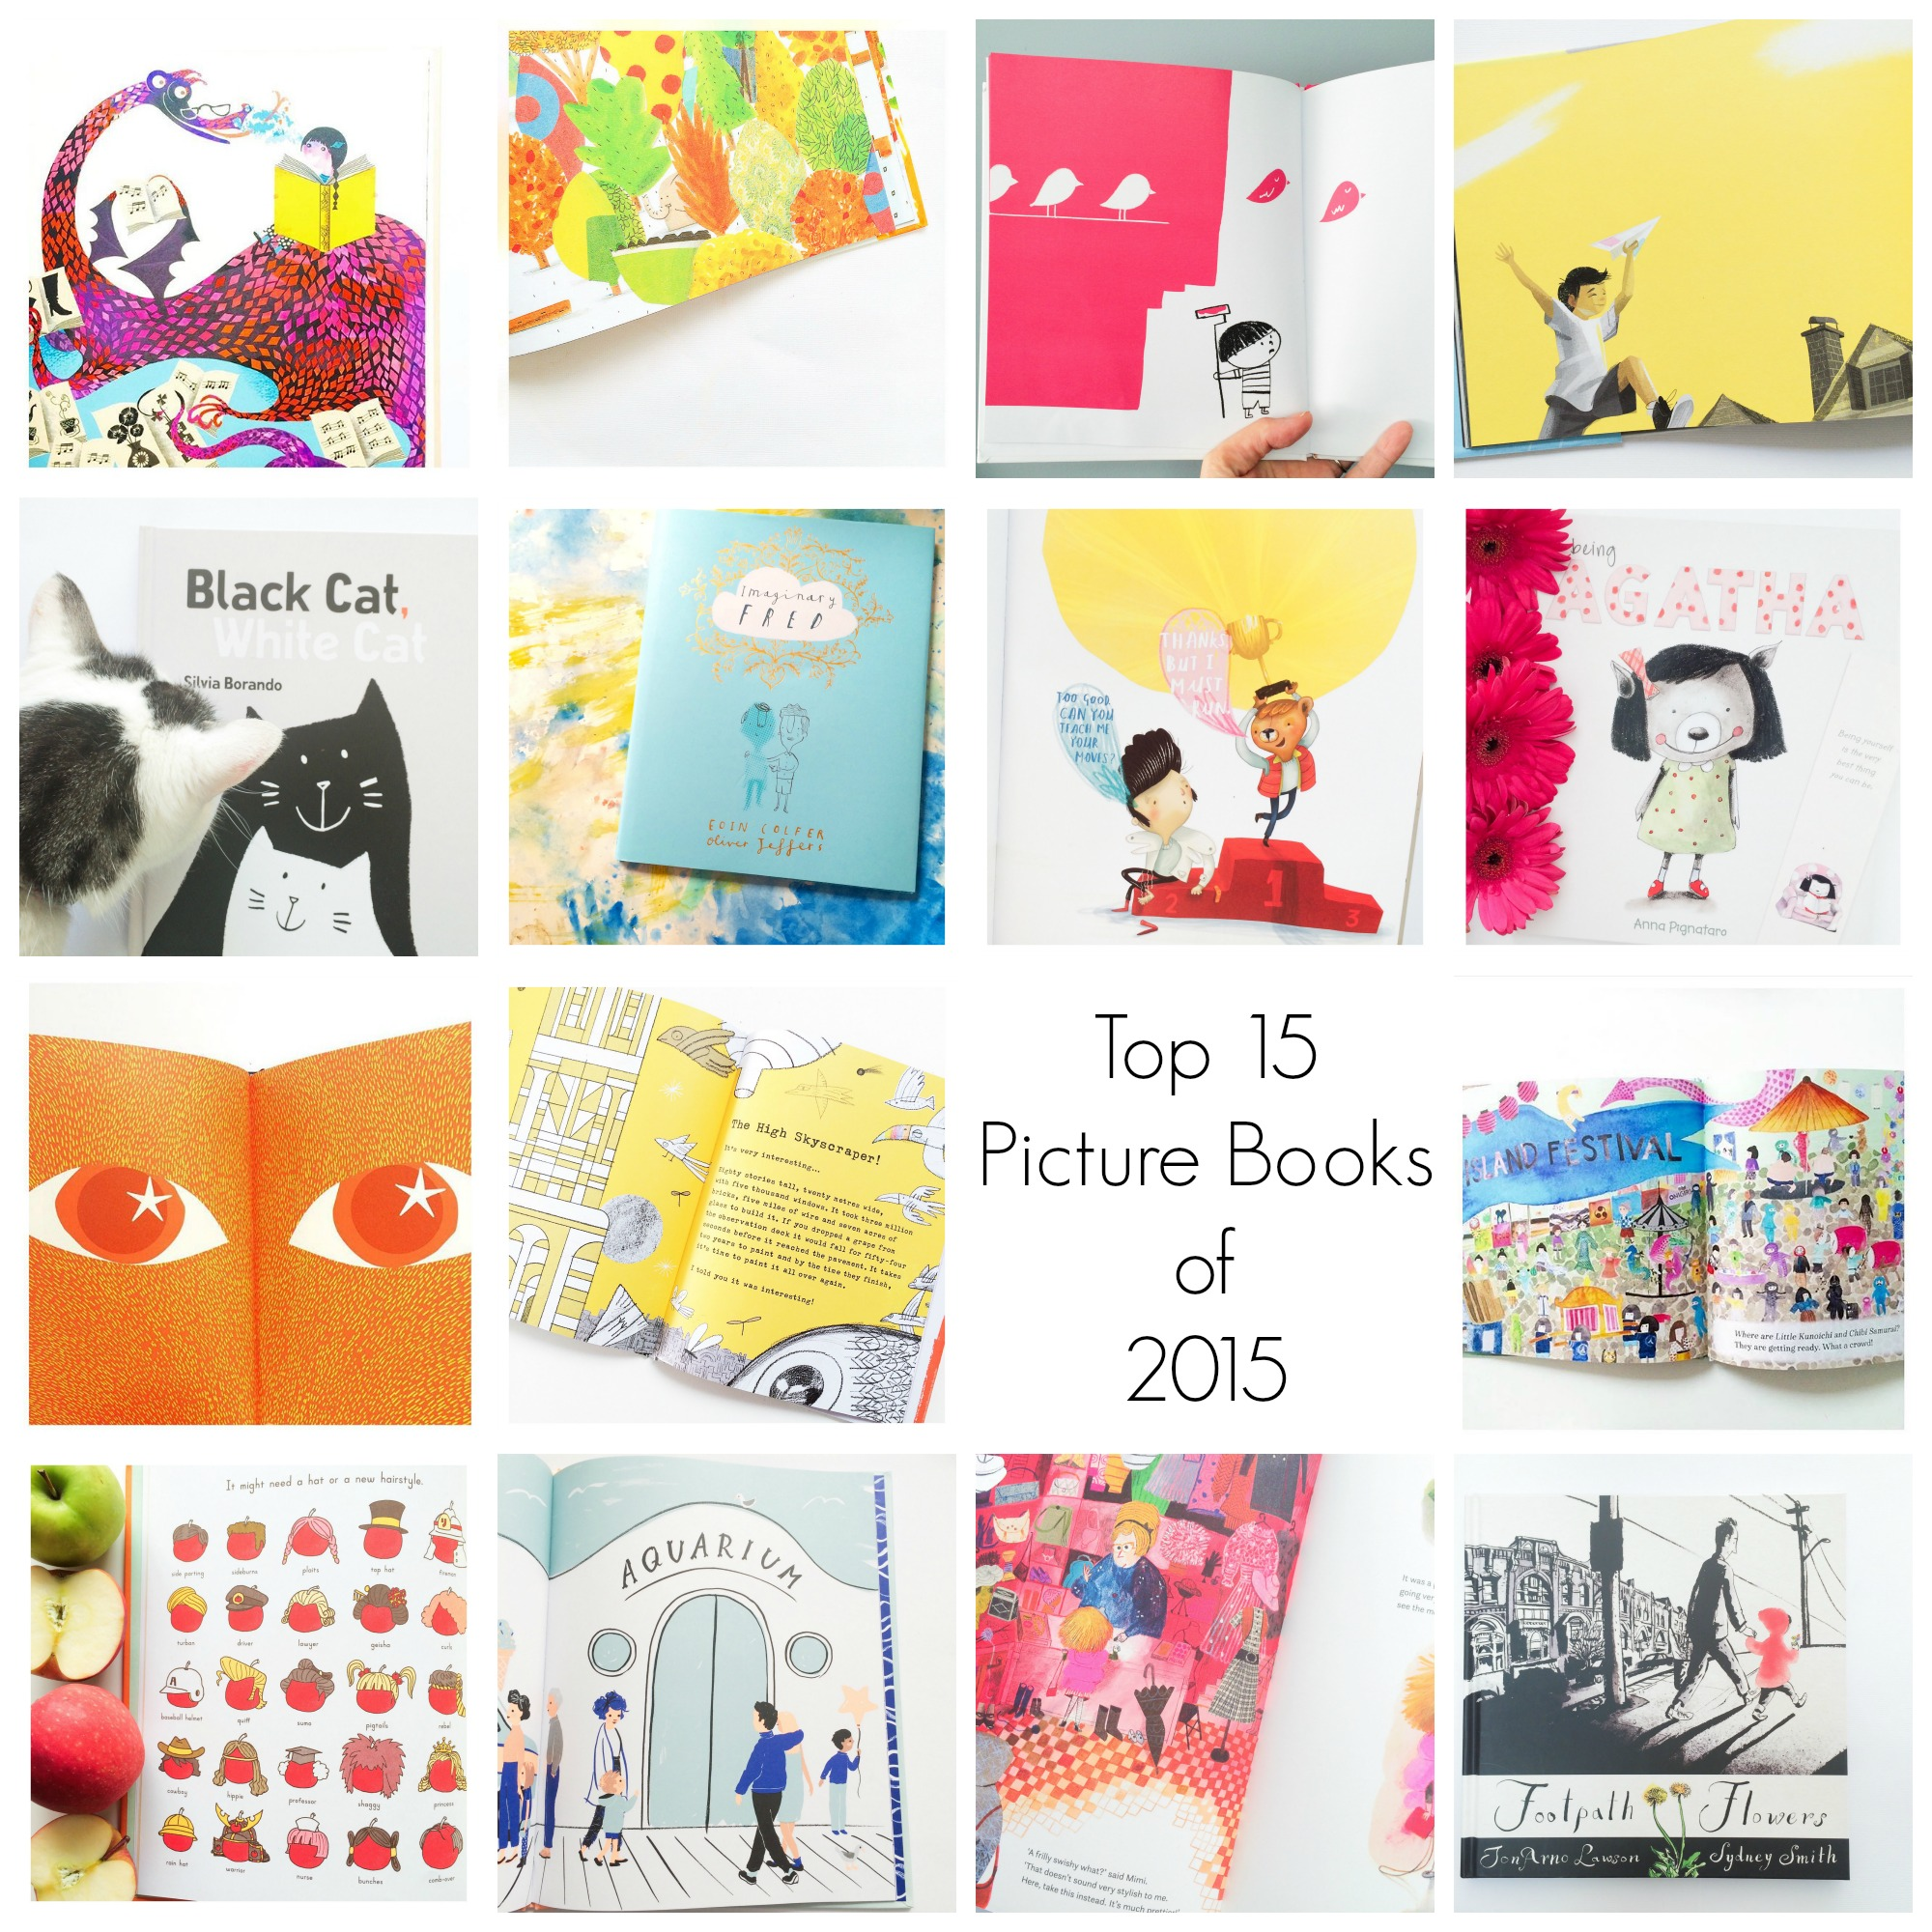 Top 15 Picture Books of 2015